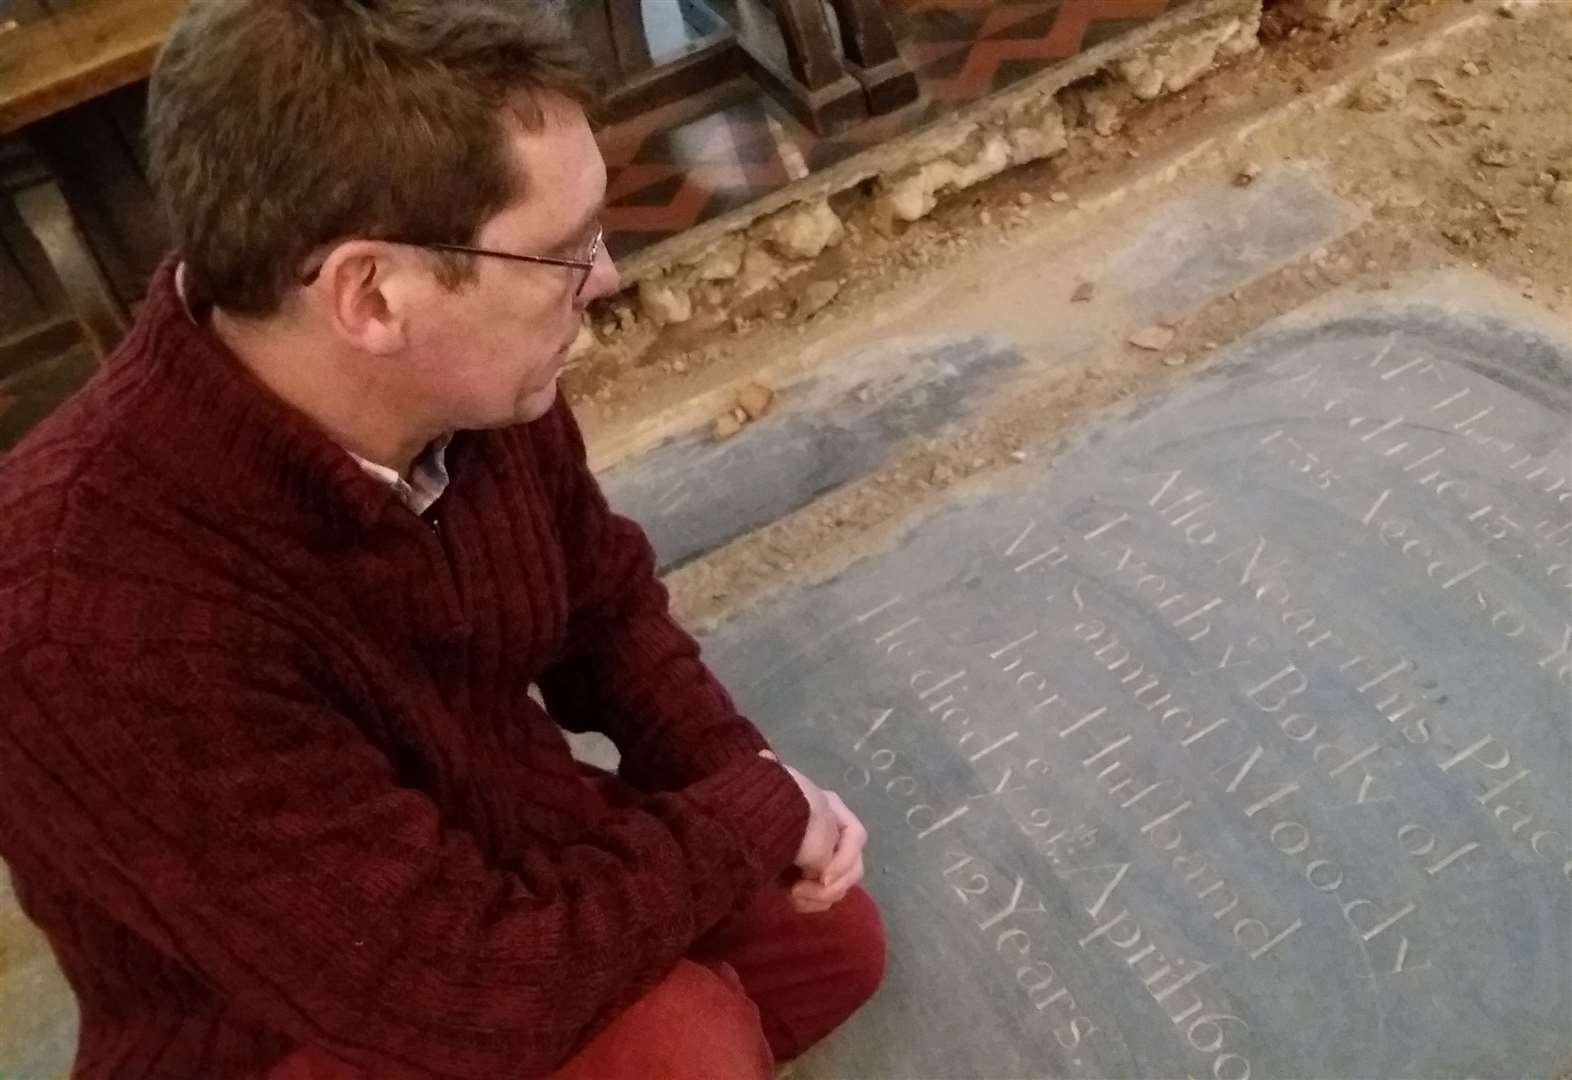 Unearthed memorial could be ancestors of Bury tour guide